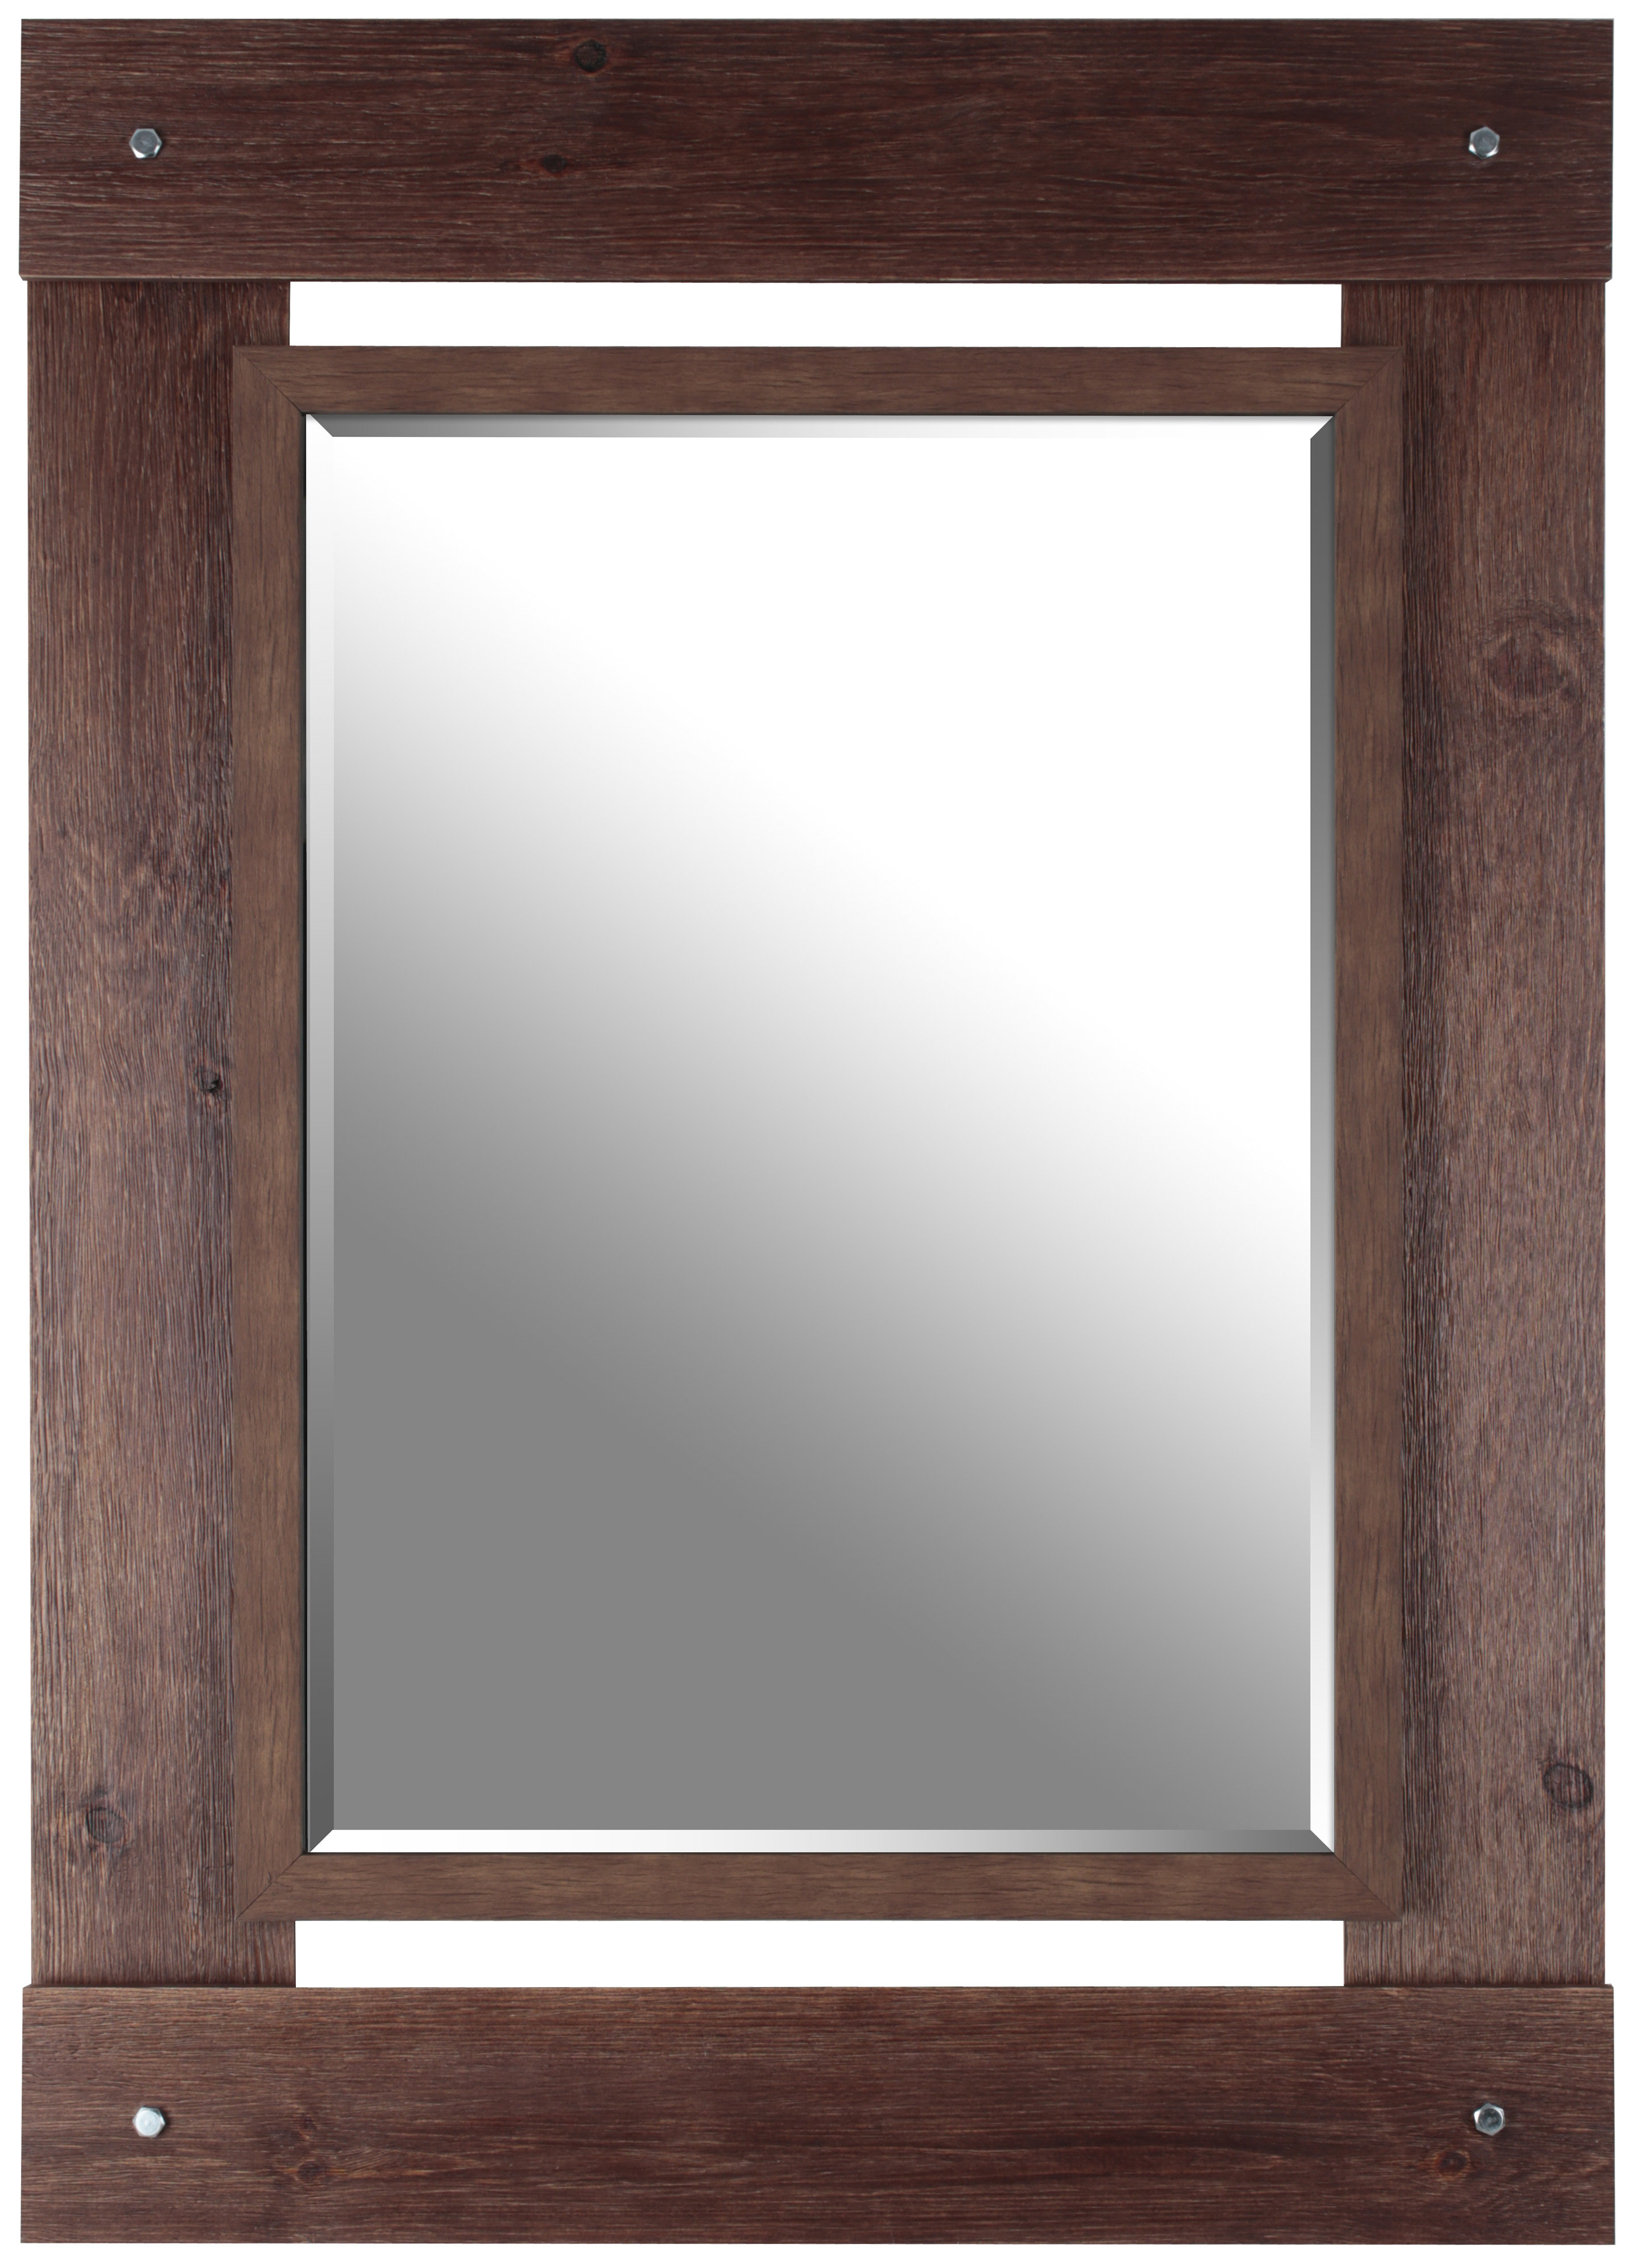 Modern & Contemporary Beveled Wall Mirror Throughout Most Popular Modern & Contemporary Beveled Wall Mirrors (View 15 of 20)